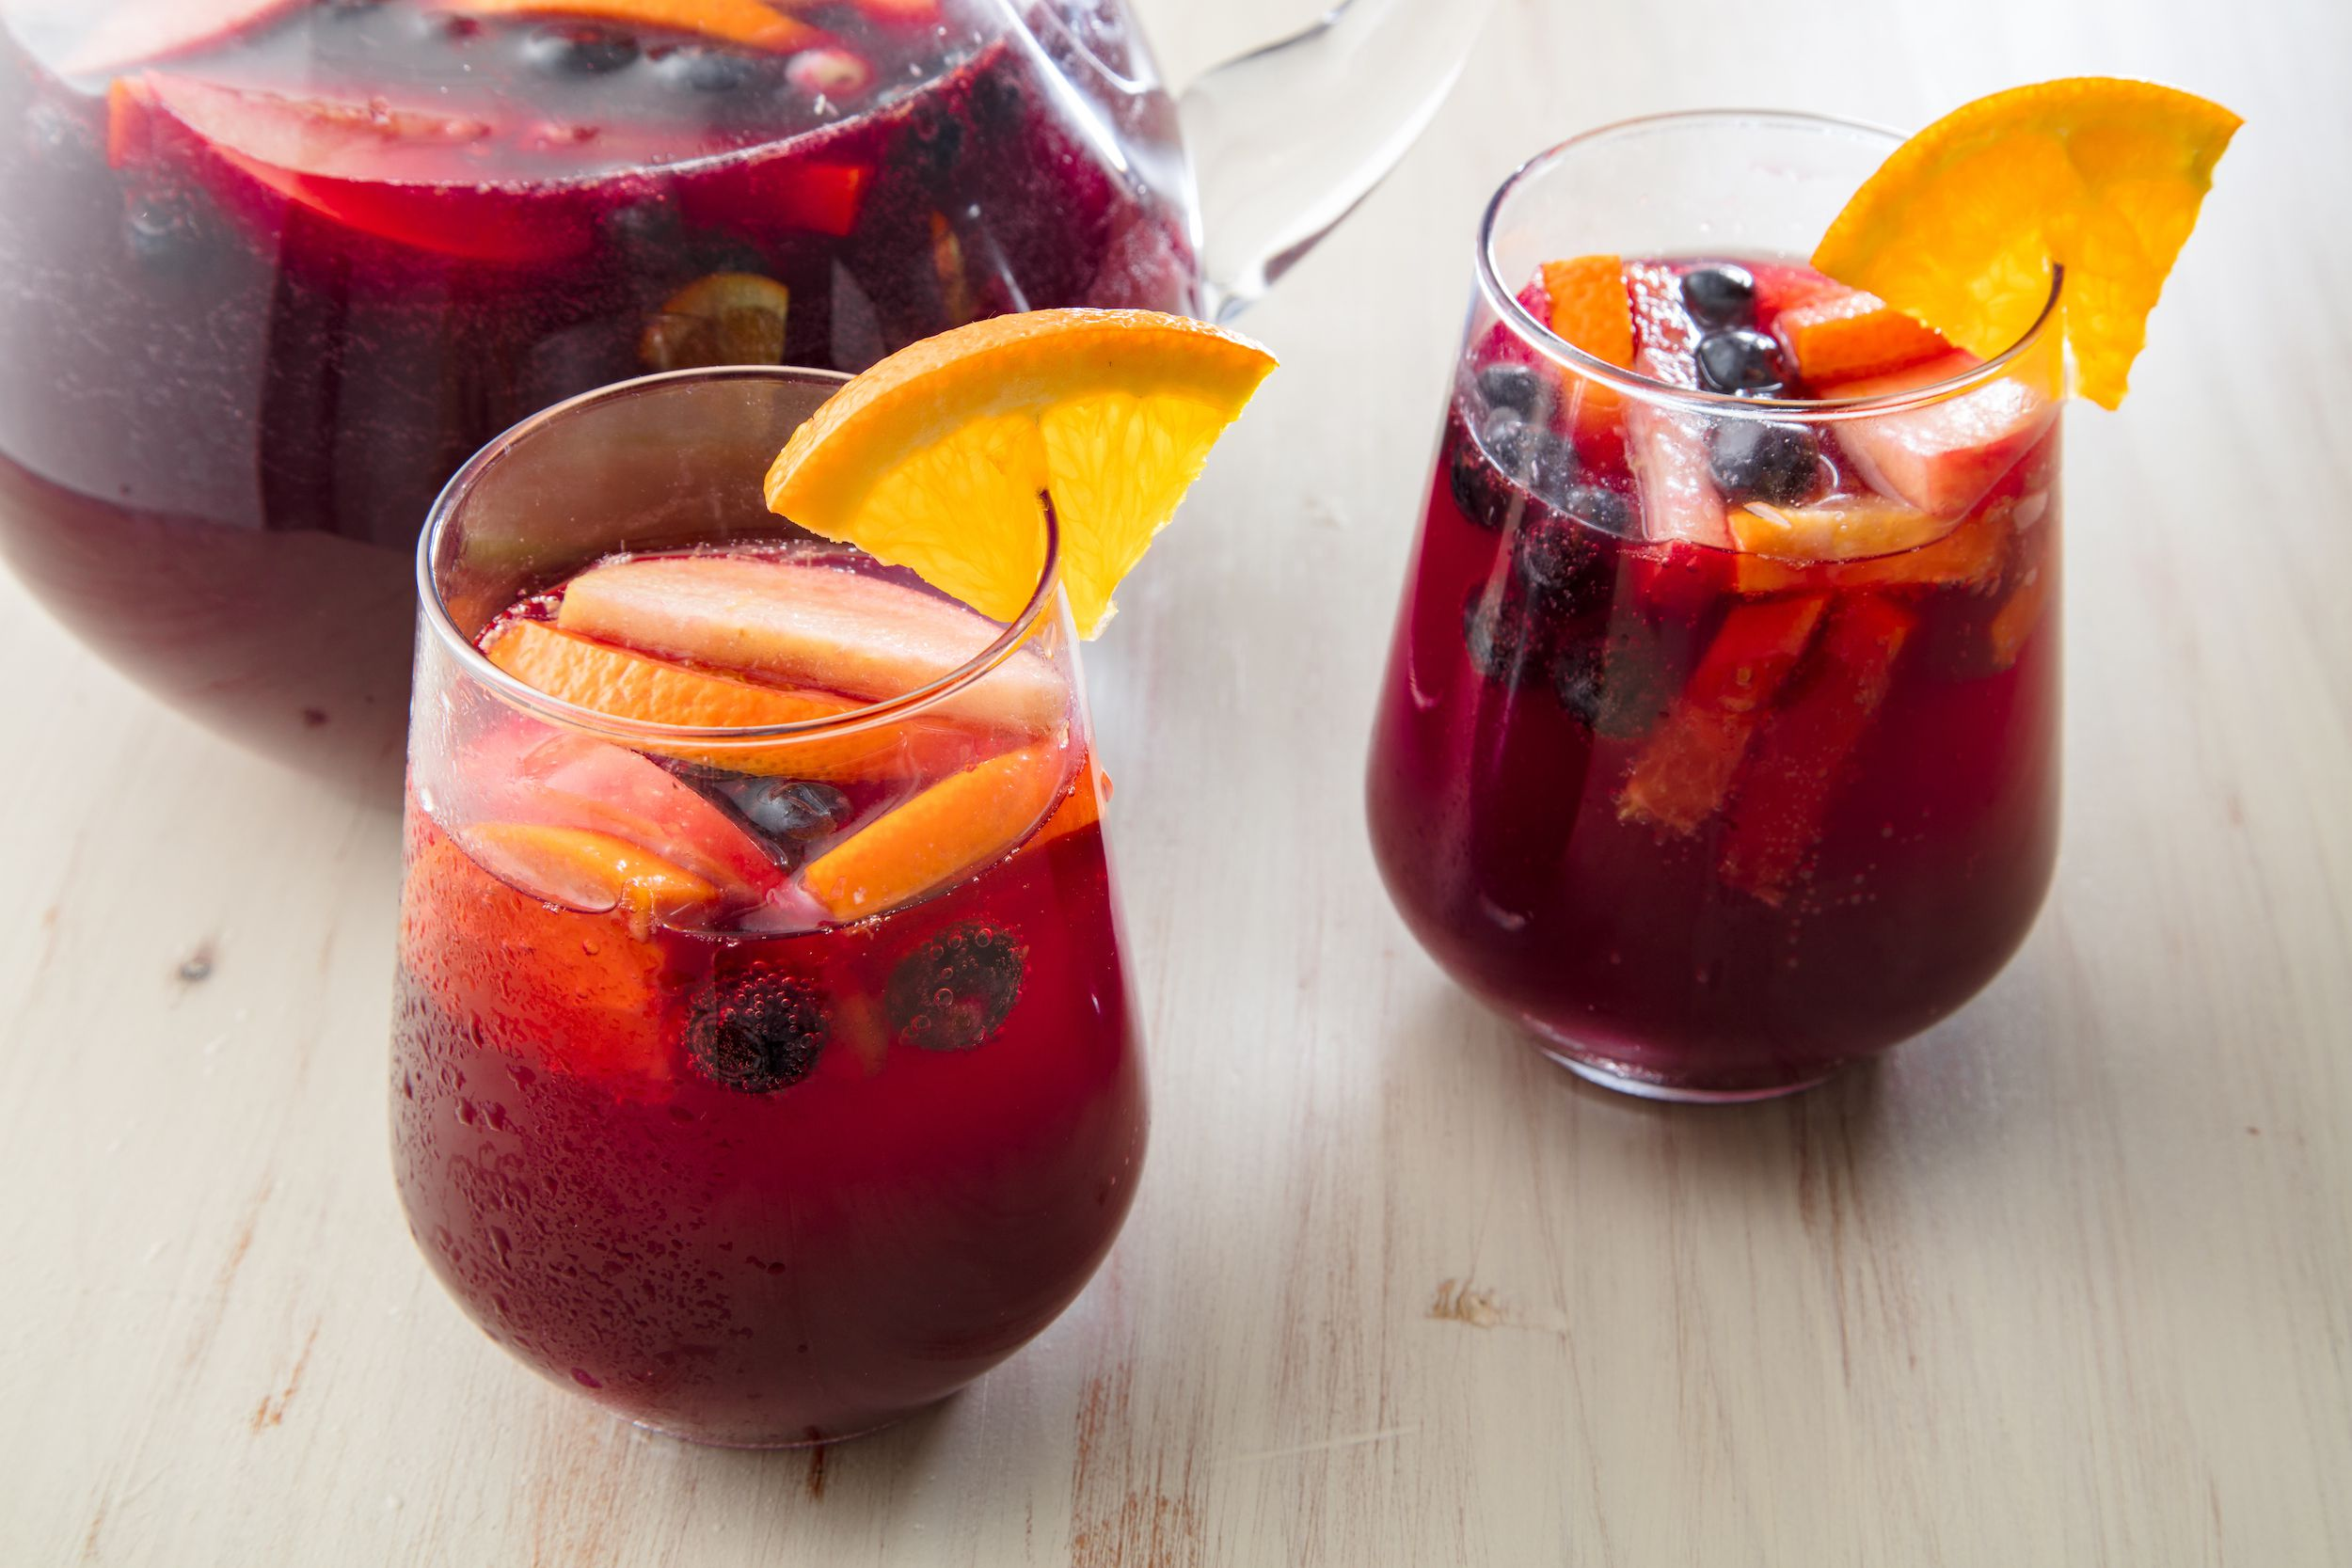 Best Red Wine Sangria Recipe - How to Make Easy Sangria